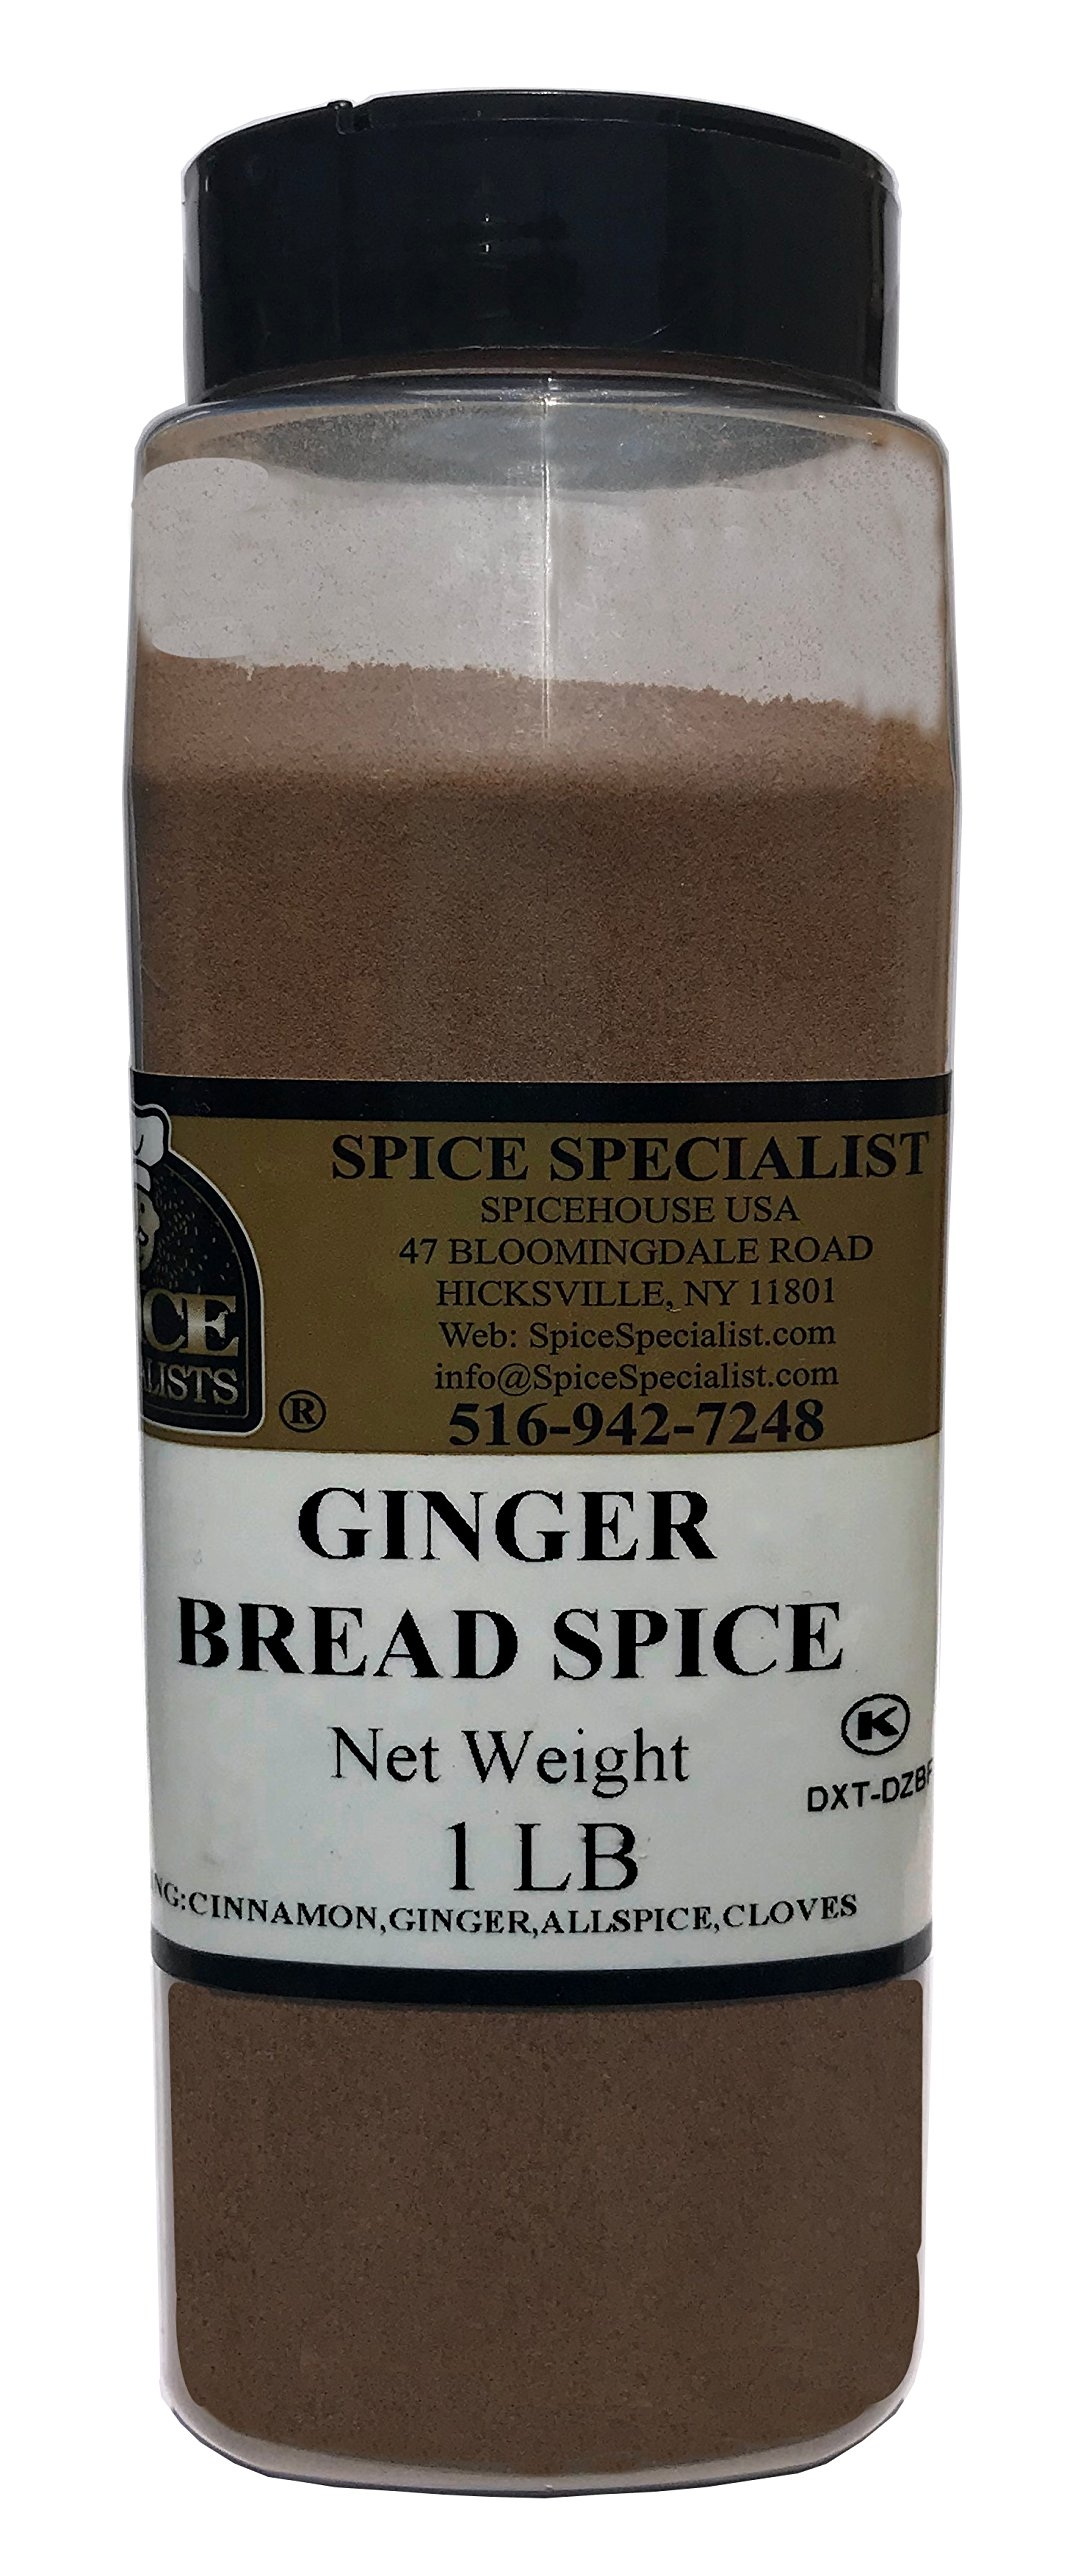 Chef Cherie's Gingerbread Spice in a One Pound Plastic Container